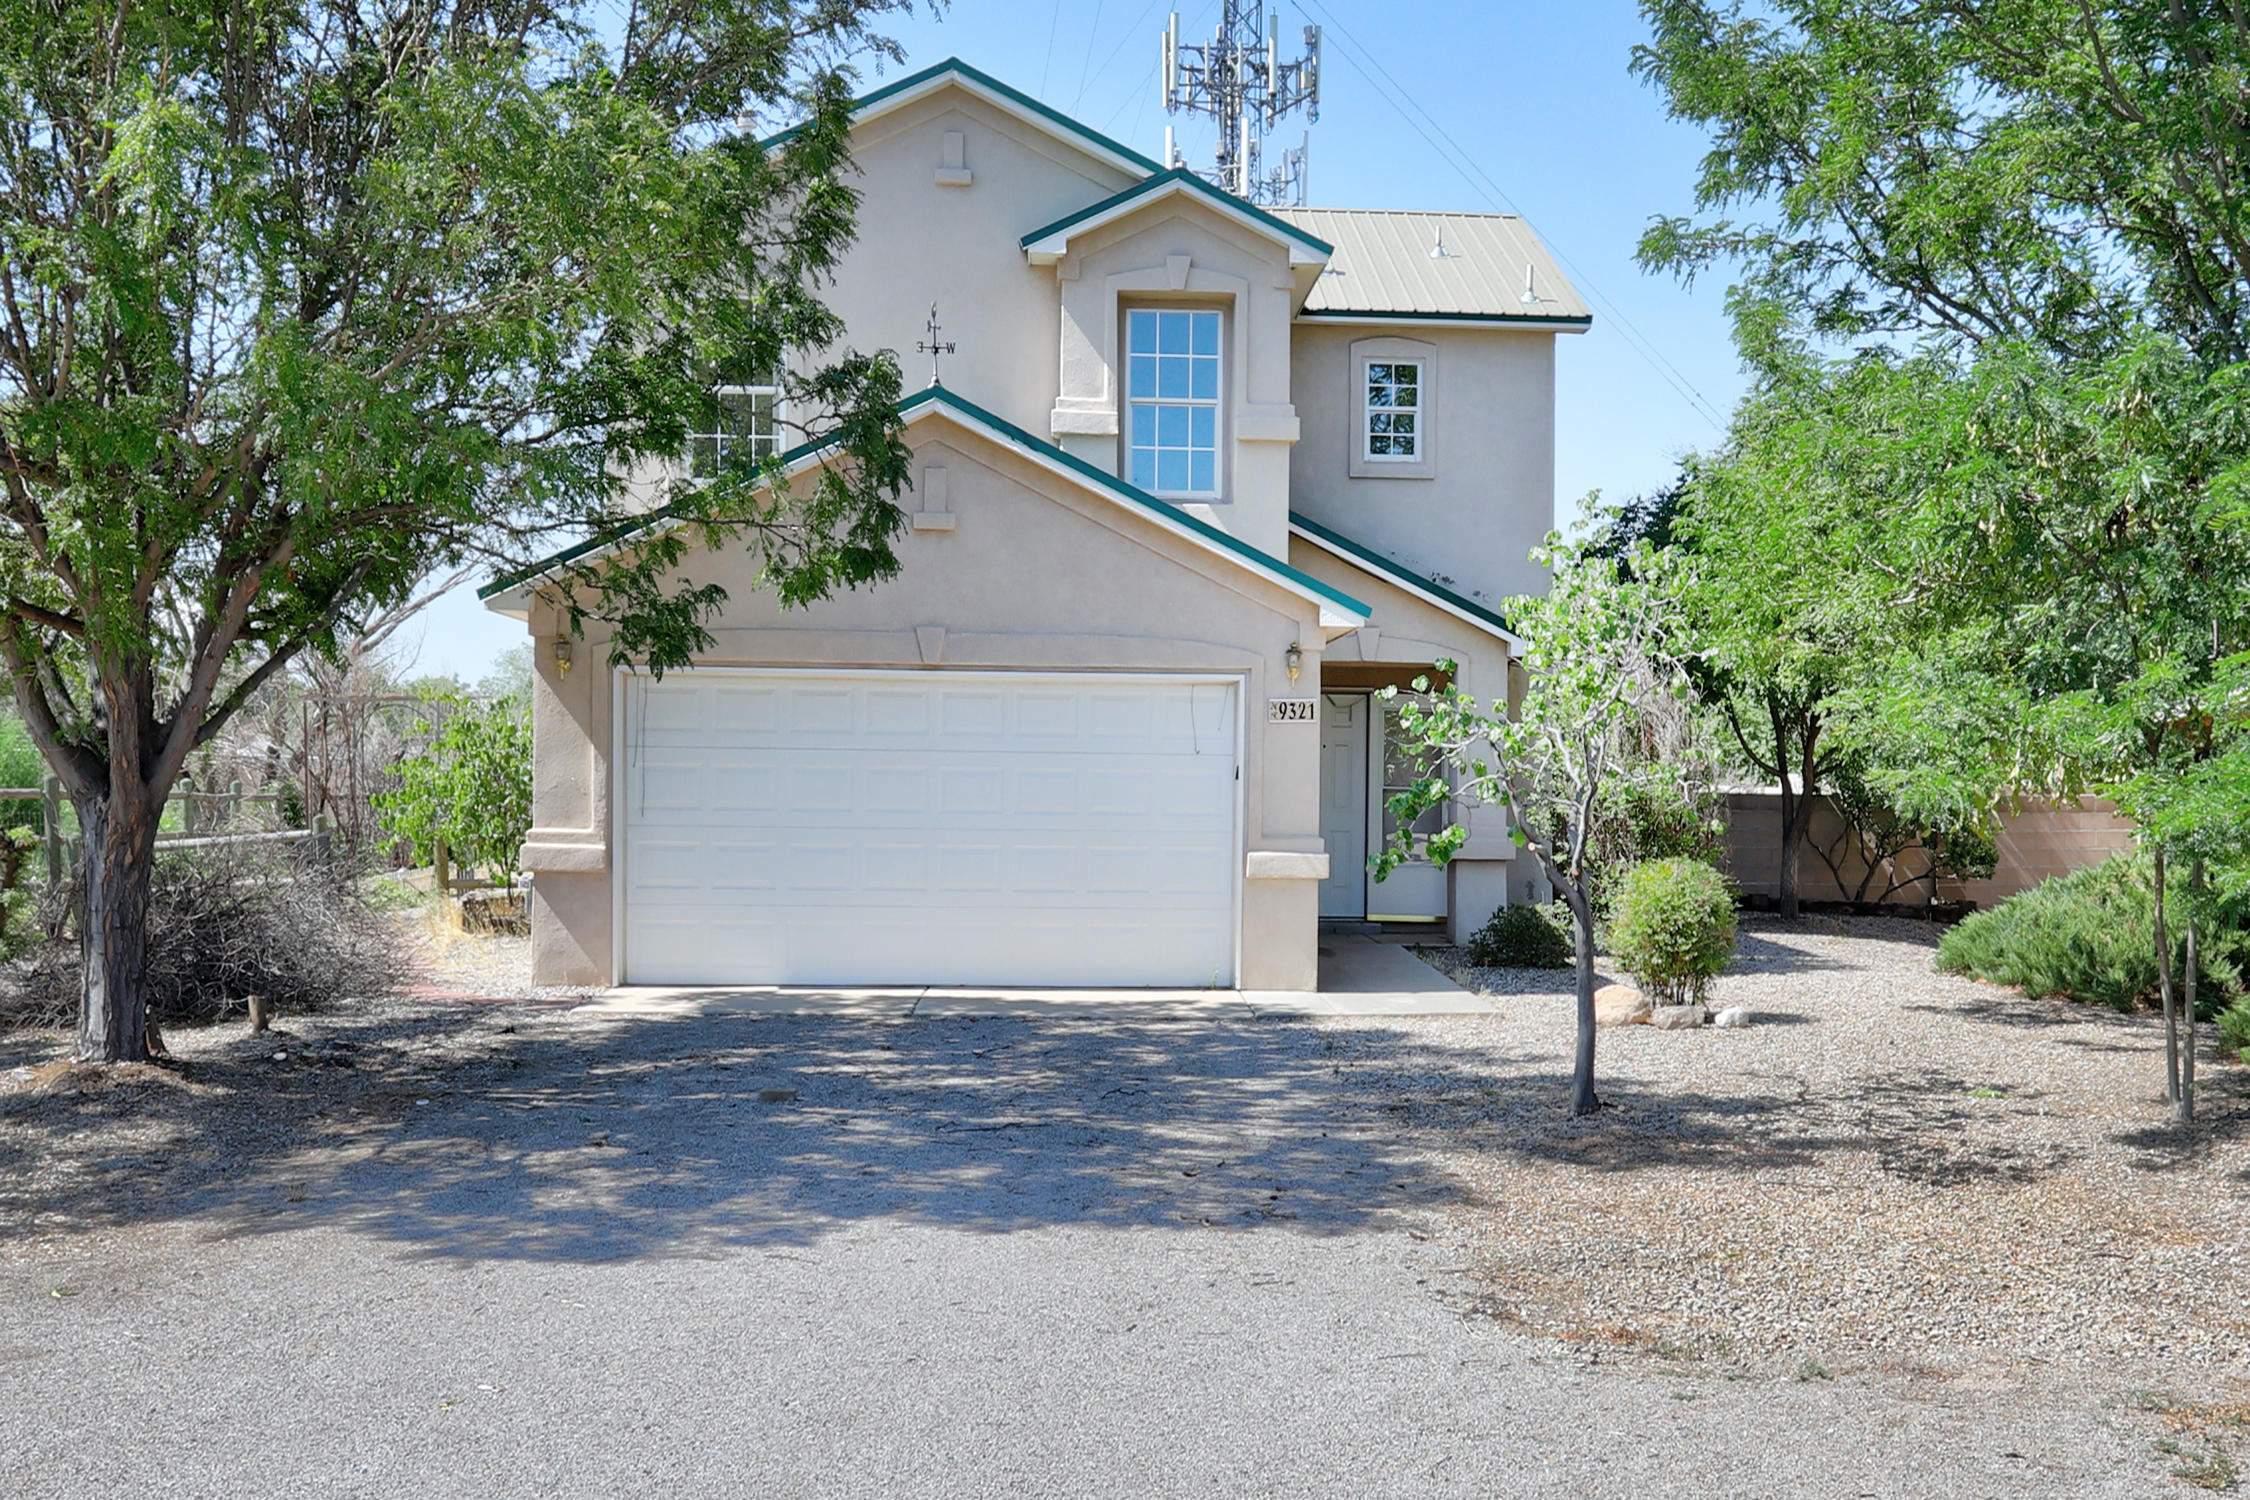 Nice home in the desirable north valley.  Landscape updates, inside has been deep cleaned, roof maintenance completed.